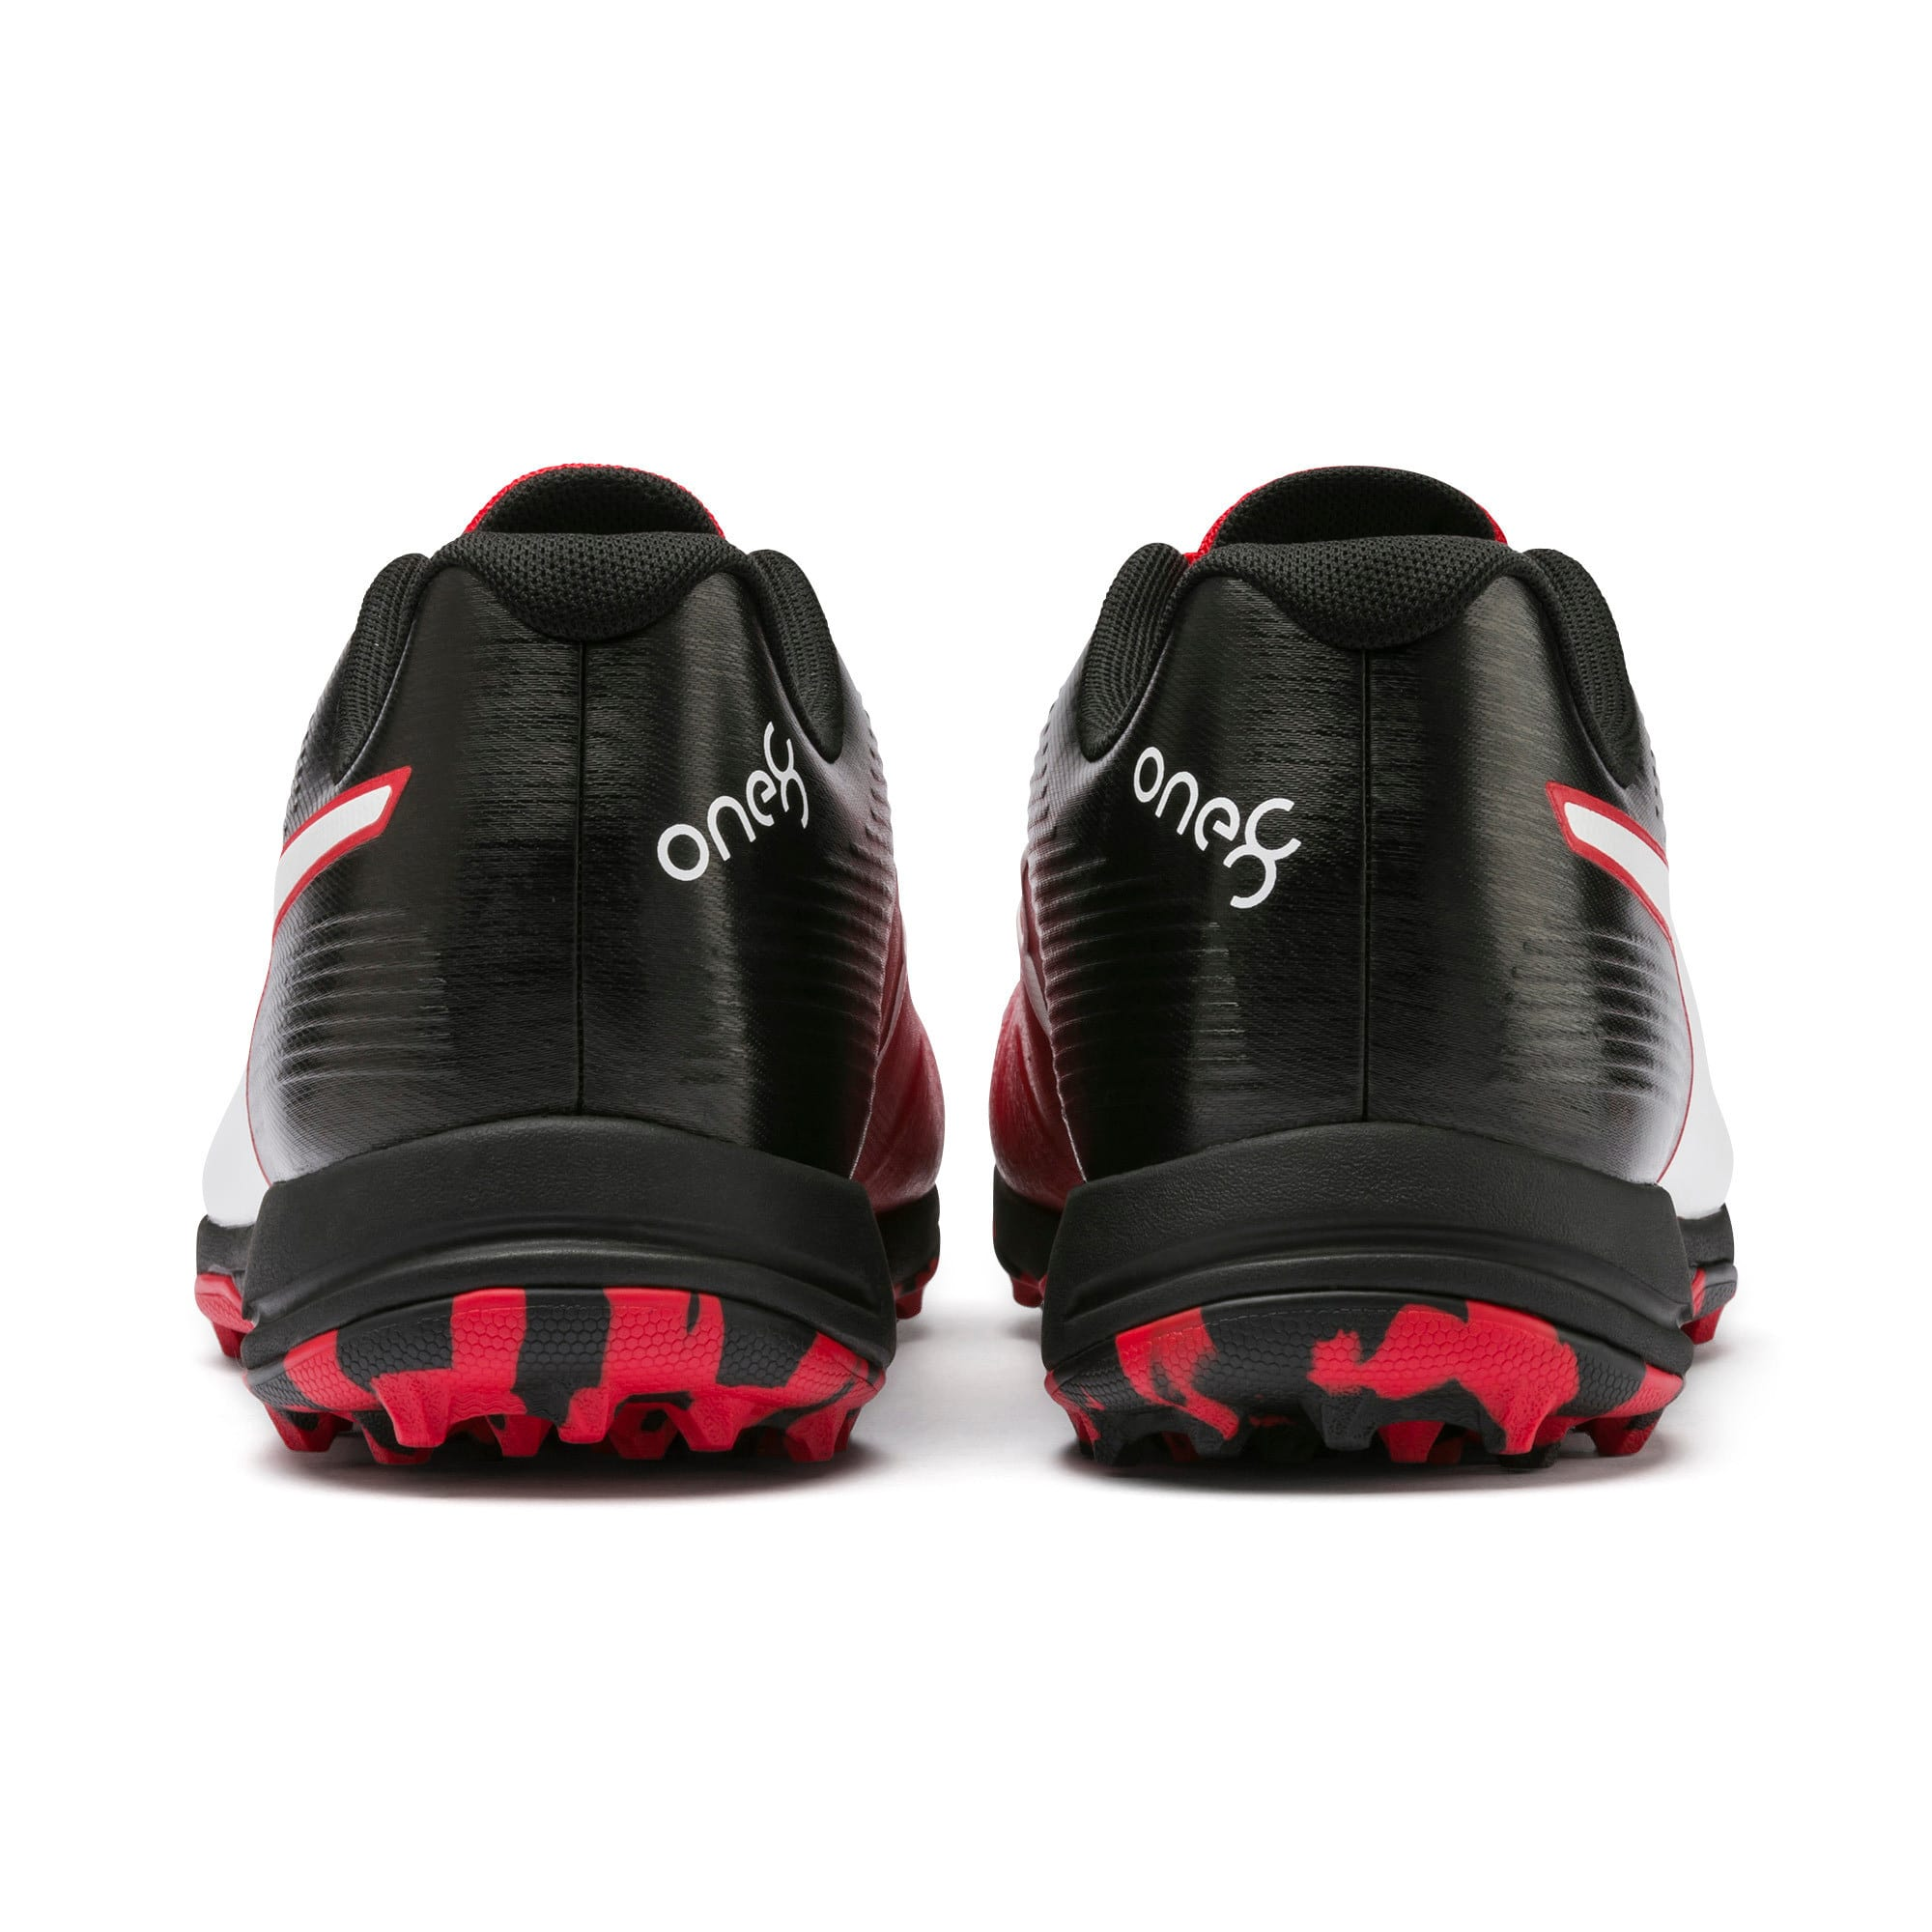 Thumbnail 3 of PUMA 19 FH Rubber Men's Cricket Shoes, High Risk Red-Black-White, medium-IND